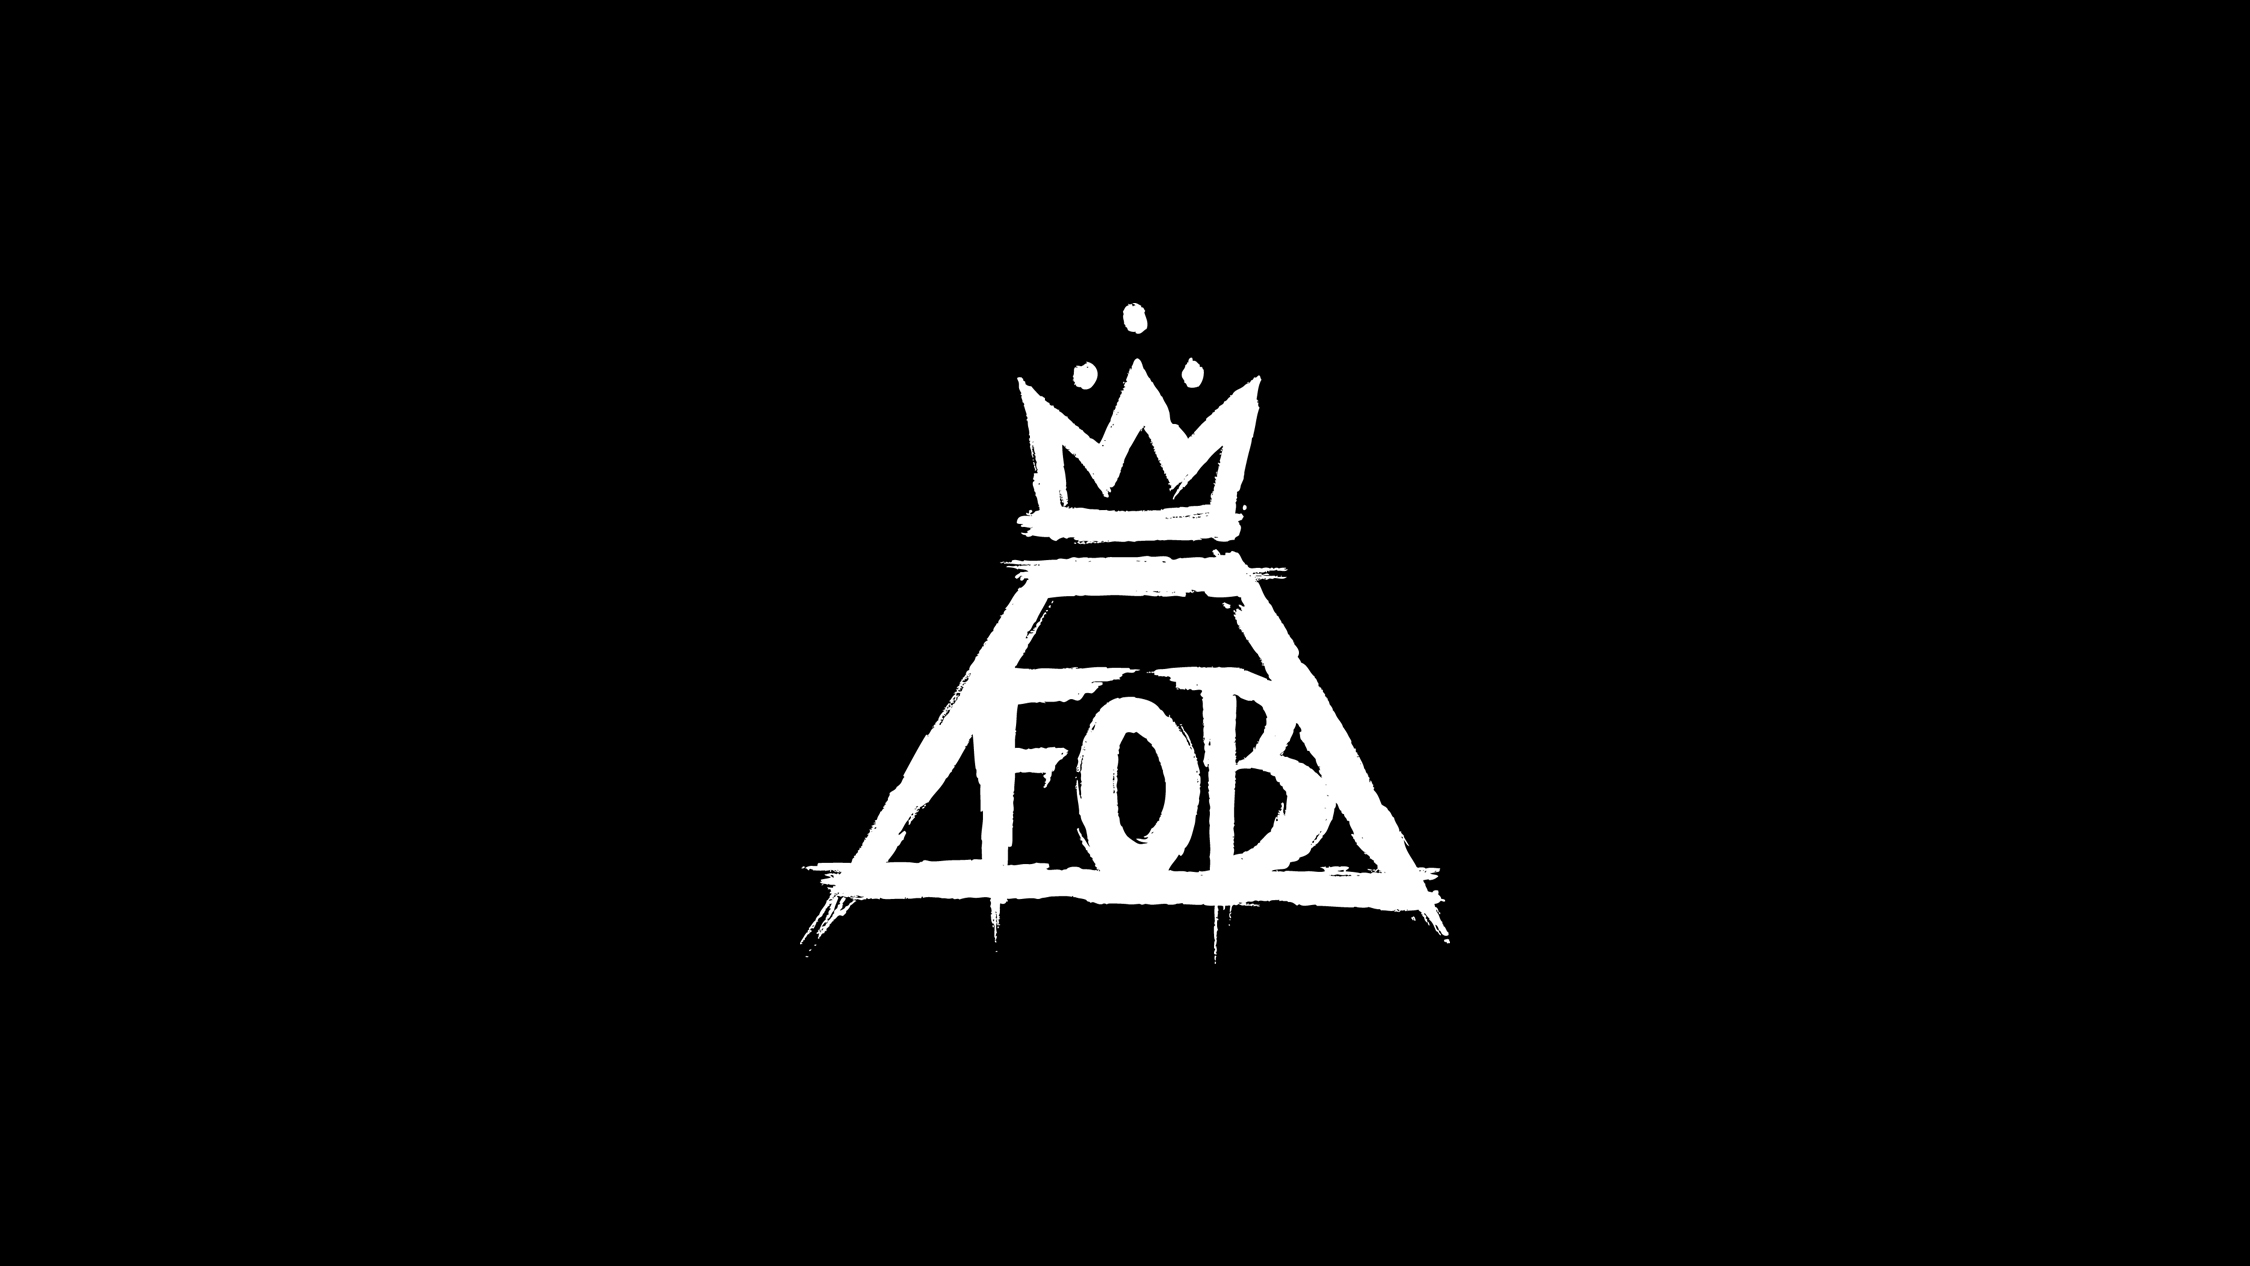 fall out boy albums download mp3